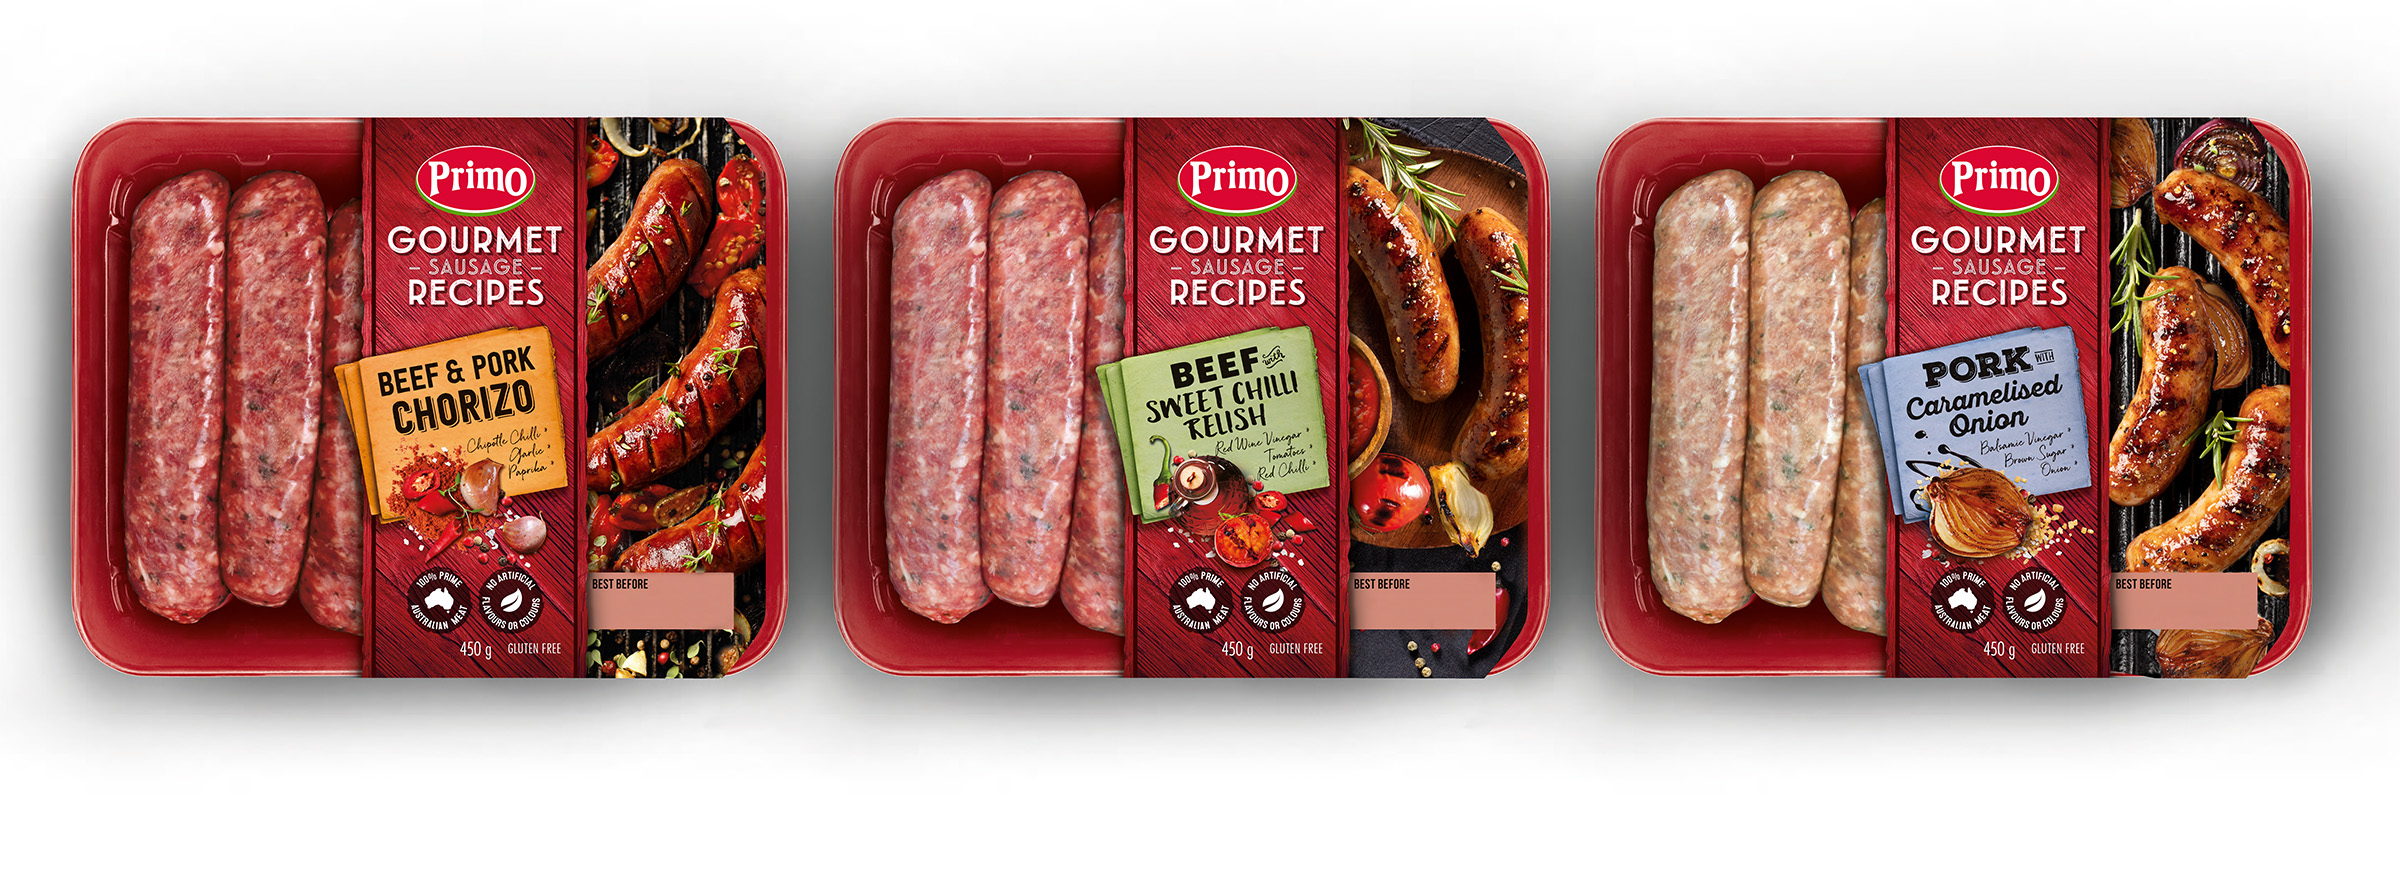 Studio product photography of Primo Gourmet Sausages